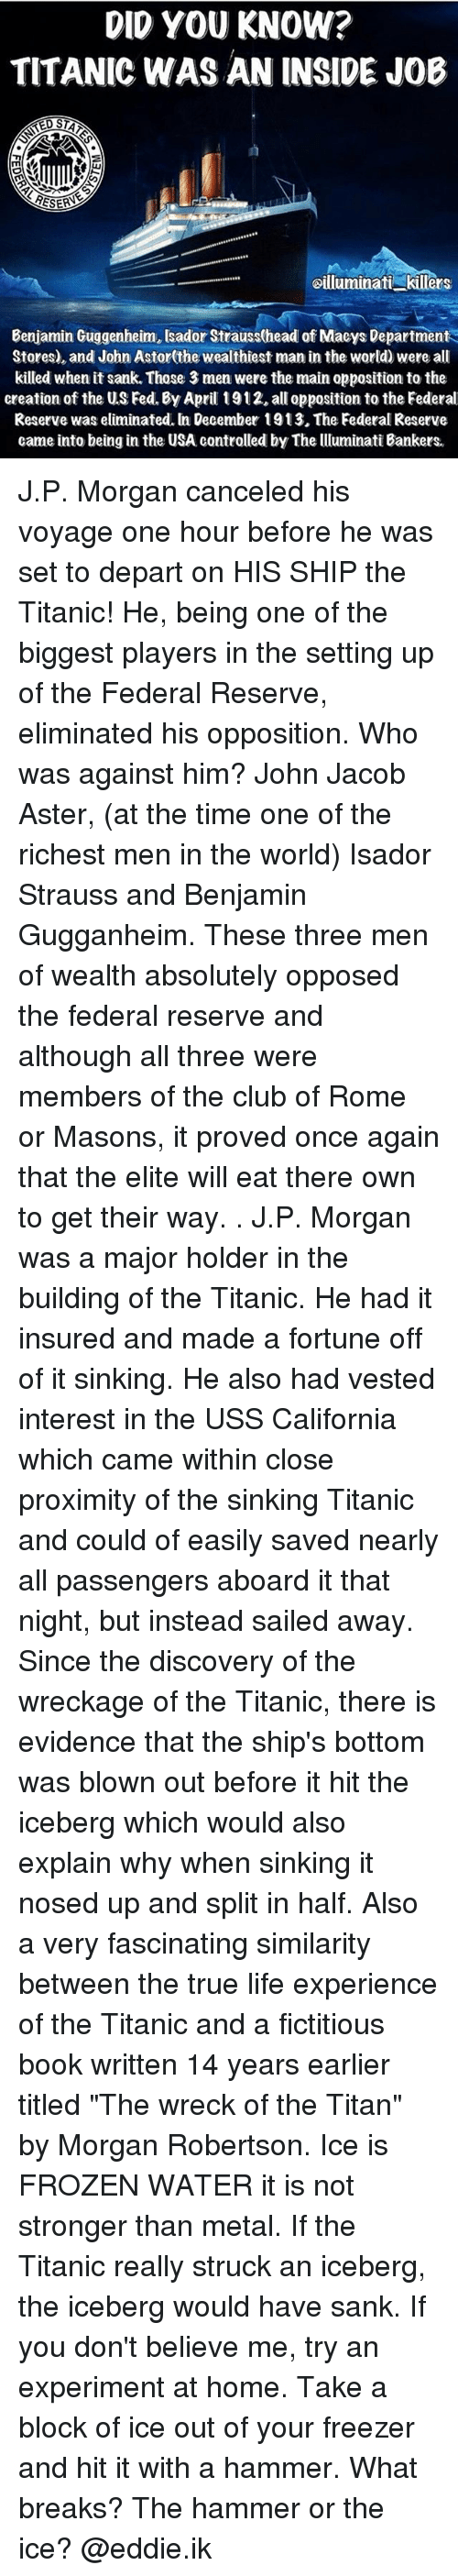 """Club, Frozen, and Head: DID YOU KNOW?  TITANIC WAS AN INSIDE JOB  RESERA  oilluminati killers  Benjamin Guggenheim, sador Strauss(head of Maeys Department  Stores), and John Astor(the wealthiest man in the world) were all  killed when it sank. Those 3 men were the main opposition to the  creation of the US Fed. By April 1912.all opposition to the Federal  Reserve was eliminated. In December 1913. The Federal Reserve  came into being in the USA contralled by The lluminati Bankers. J.P. Morgan canceled his voyage one hour before he was set to depart on HIS SHIP the Titanic! He, being one of the biggest players in the setting up of the Federal Reserve, eliminated his opposition. Who was against him? John Jacob Aster, (at the time one of the richest men in the world) Isador Strauss and Benjamin Gugganheim. These three men of wealth absolutely opposed the federal reserve and although all three were members of the club of Rome or Masons, it proved once again that the elite will eat there own to get their way. . J.P. Morgan was a major holder in the building of the Titanic. He had it insured and made a fortune off of it sinking. He also had vested interest in the USS California which came within close proximity of the sinking Titanic and could of easily saved nearly all passengers aboard it that night, but instead sailed away. Since the discovery of the wreckage of the Titanic, there is evidence that the ship's bottom was blown out before it hit the iceberg which would also explain why when sinking it nosed up and split in half. Also a very fascinating similarity between the true life experience of the Titanic and a fictitious book written 14 years earlier titled """"The wreck of the Titan"""" by Morgan Robertson. Ice is FROZEN WATER it is not stronger than metal. If the Titanic really struck an iceberg, the iceberg would have sank. If you don't believe me, try an experiment at home. Take a block of ice out of your freezer and hit it with a hammer. What breaks? The hammer or the"""